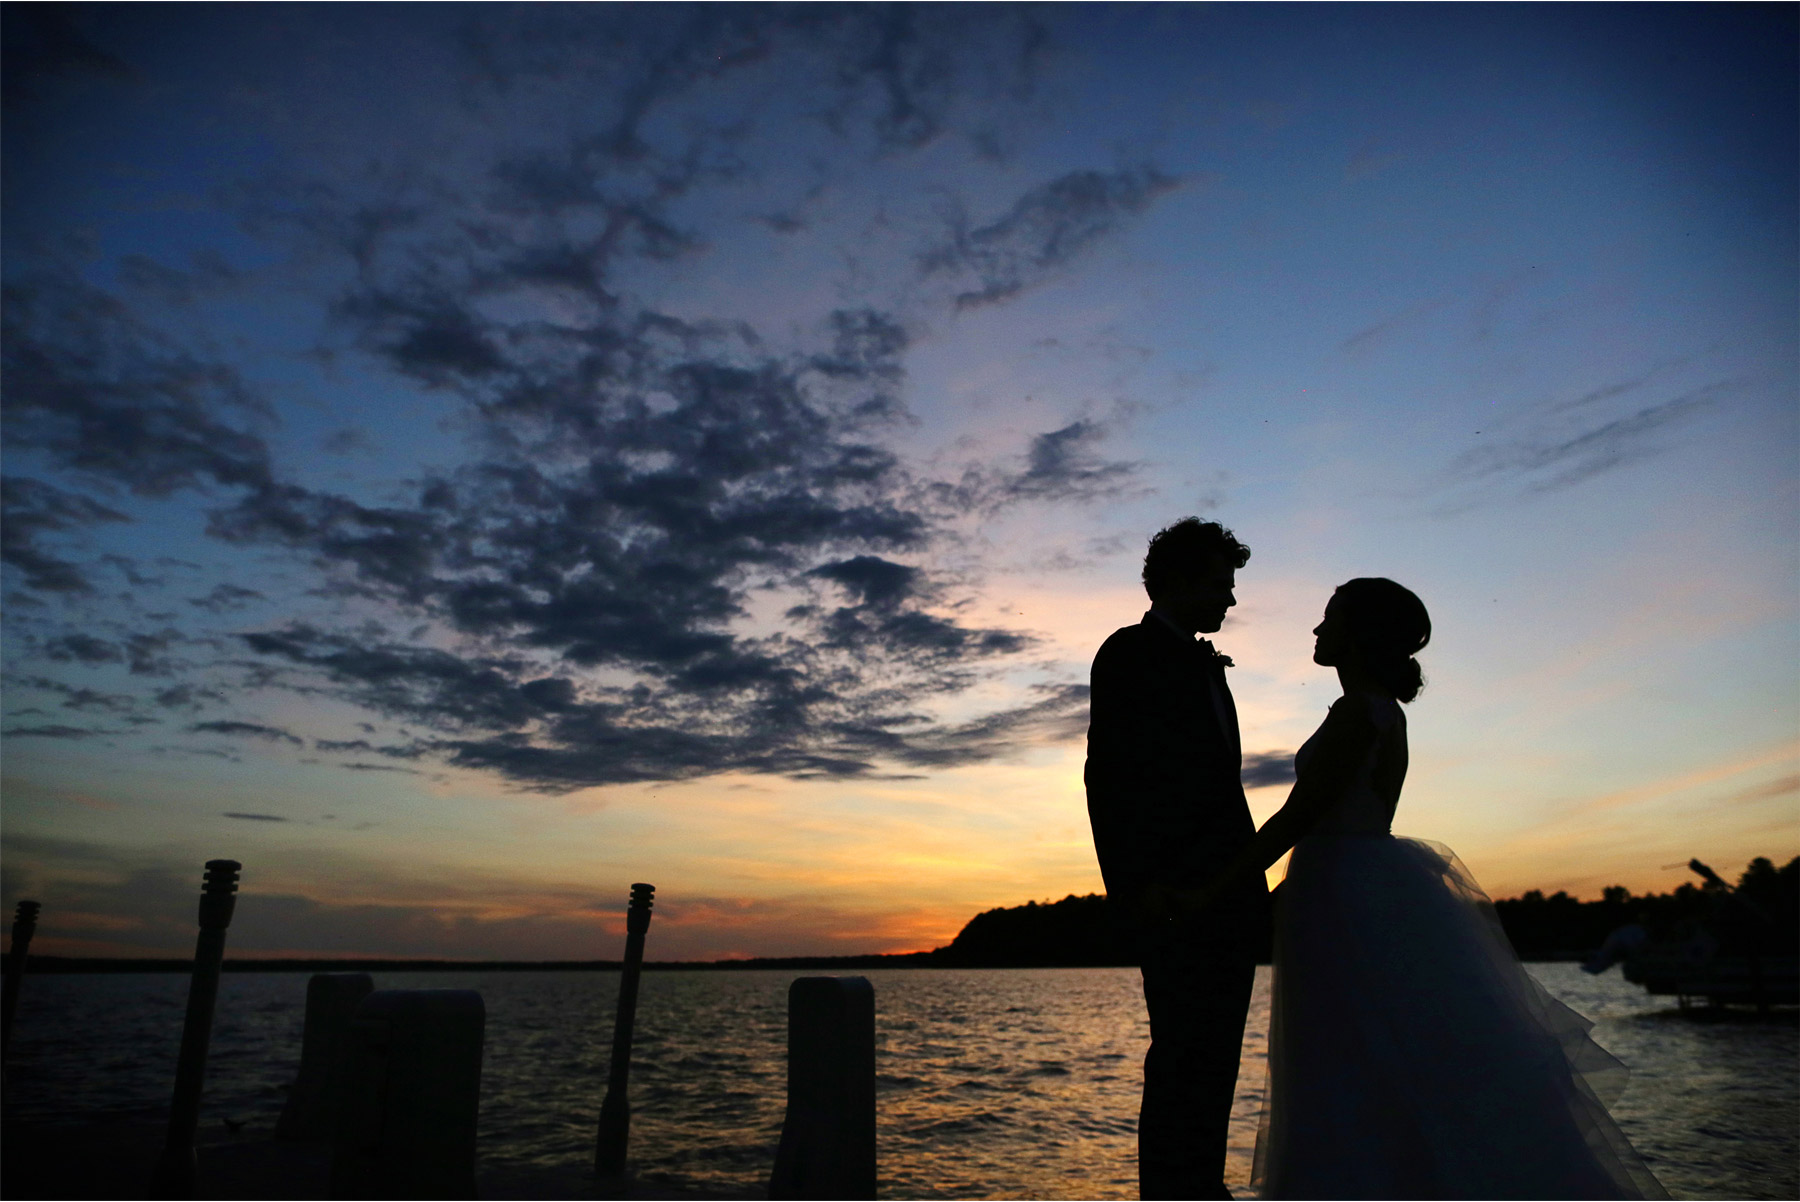 19-Brainerd-Minnesota-Wedding-Photography-by-Vick-Photography-Grand-View-Lodge-Lake-Dock-Sunset-Bethany-and-Anthony.jpg